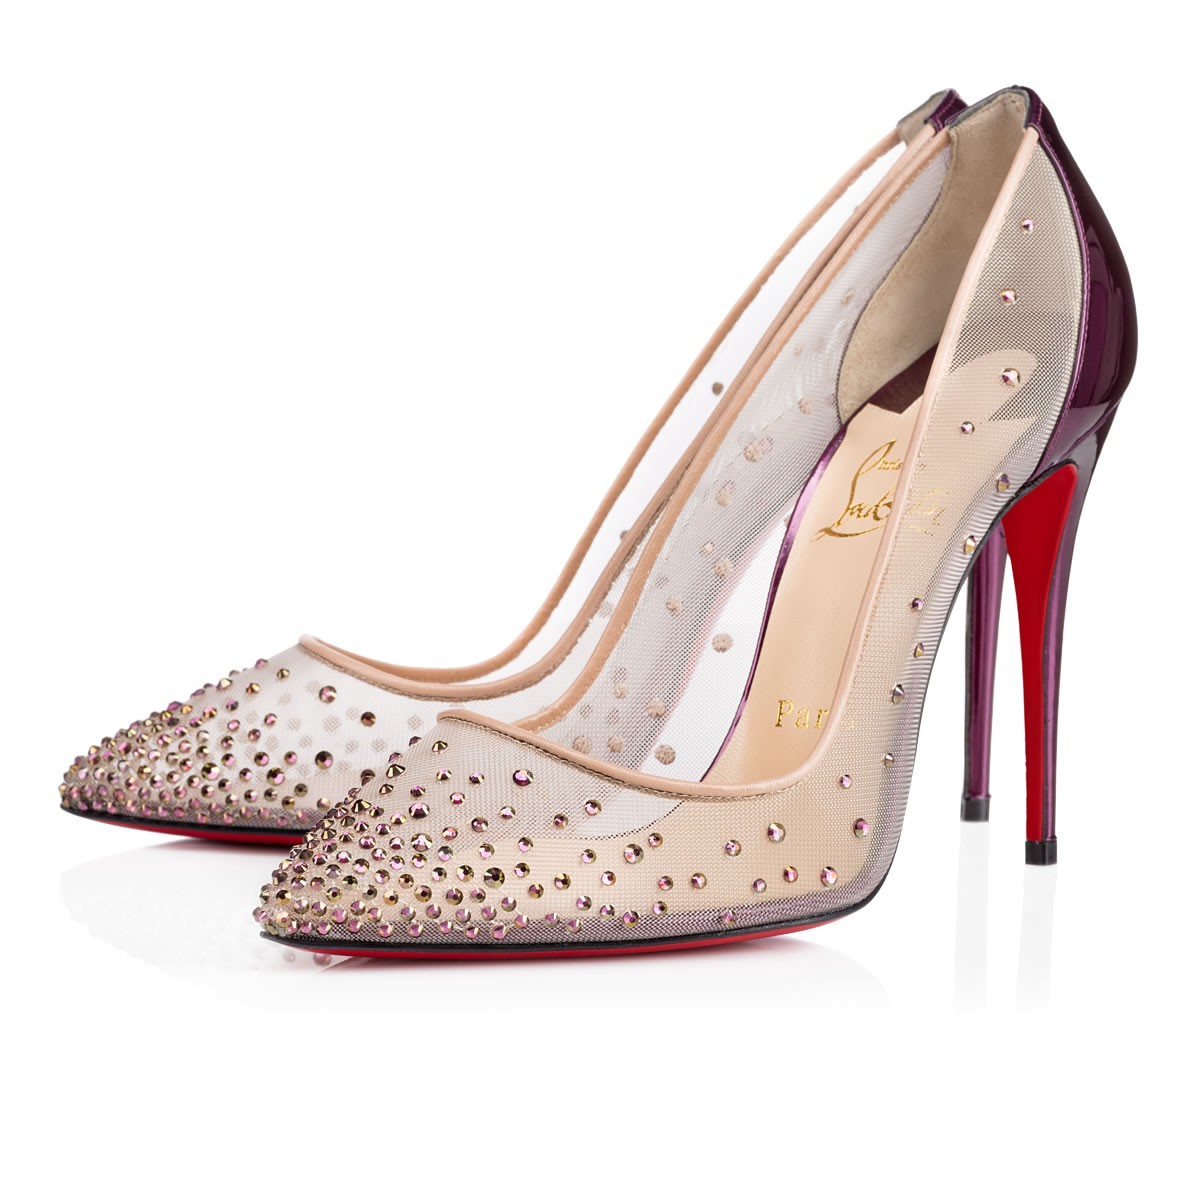 Where To Buy Christian Louboutin Shoes In South Africa